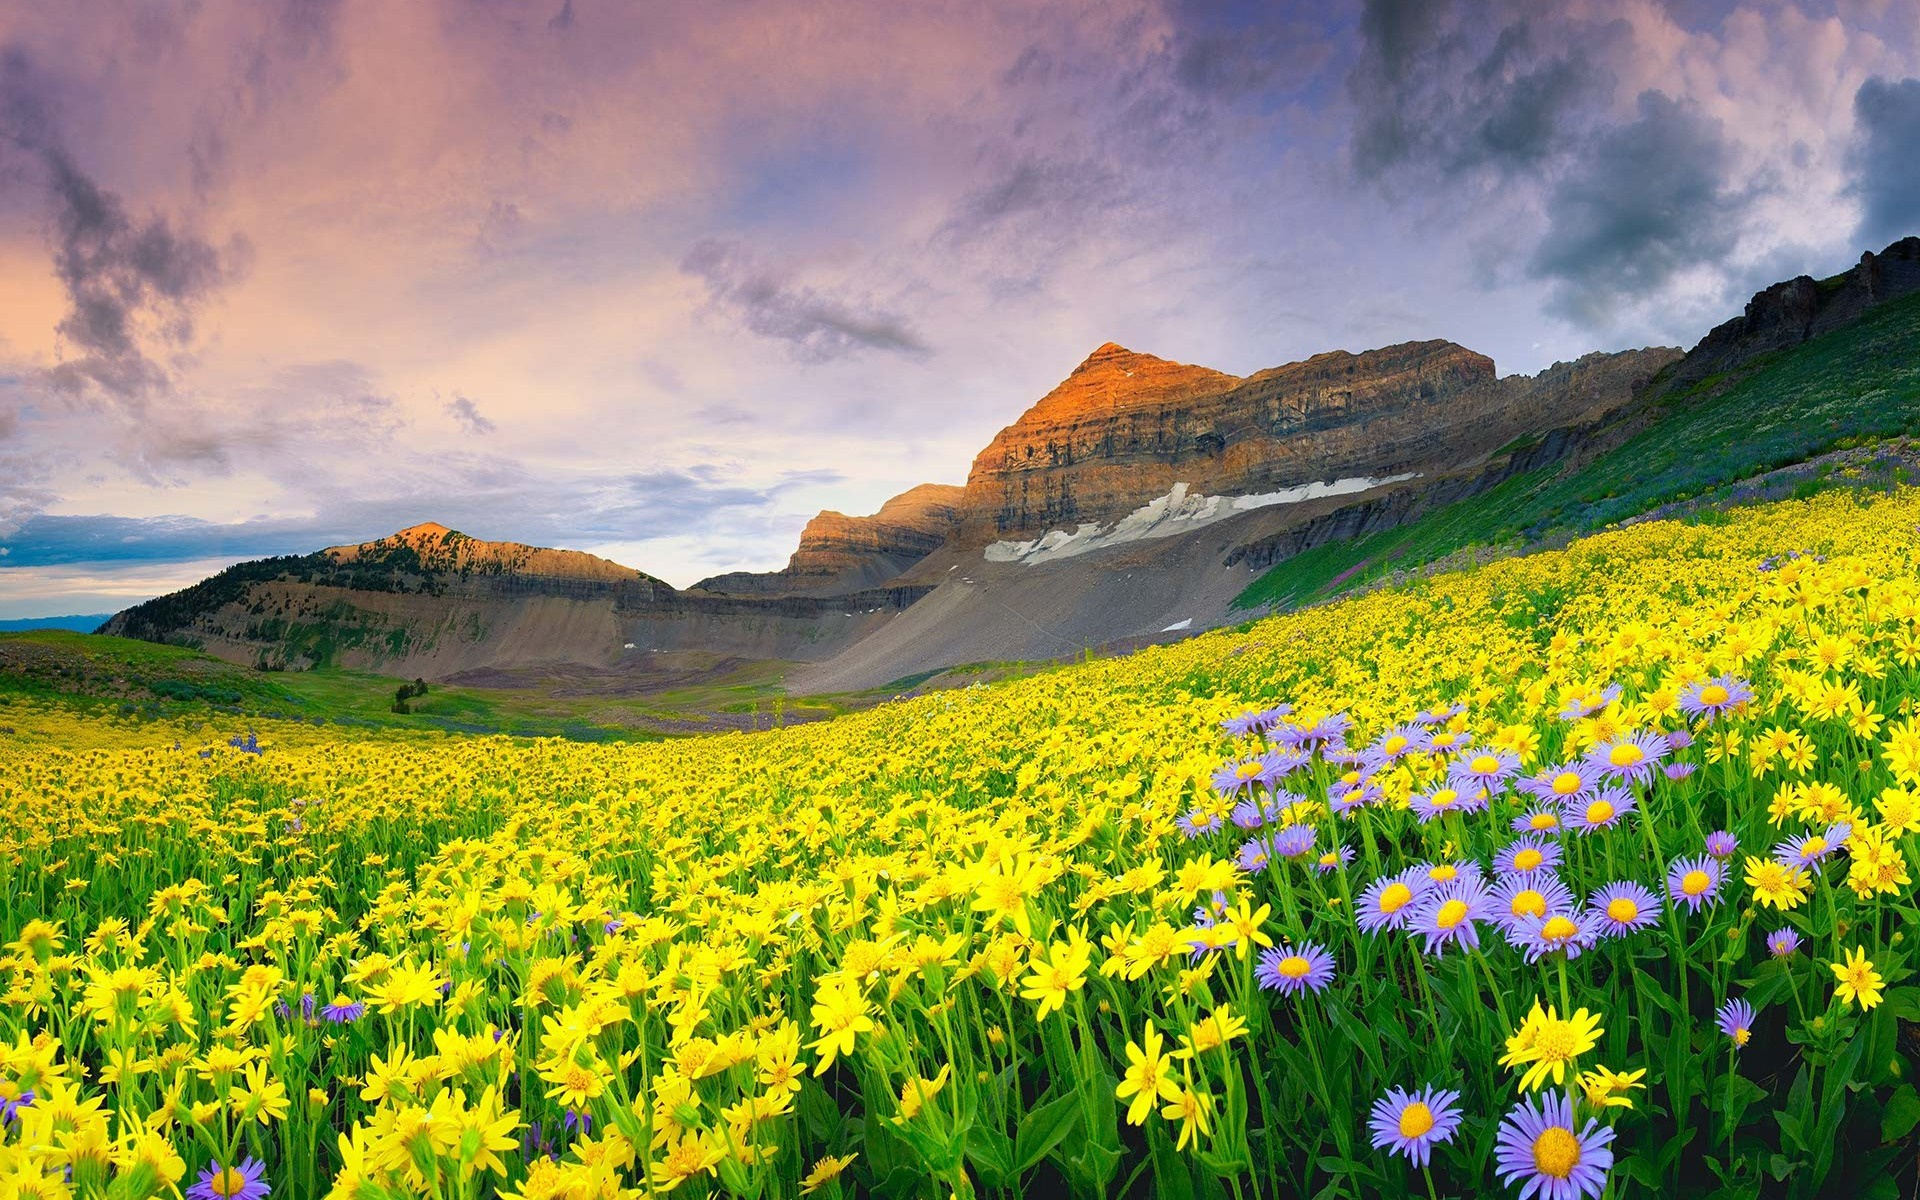 valley of flowers national park - world heritage sites in india